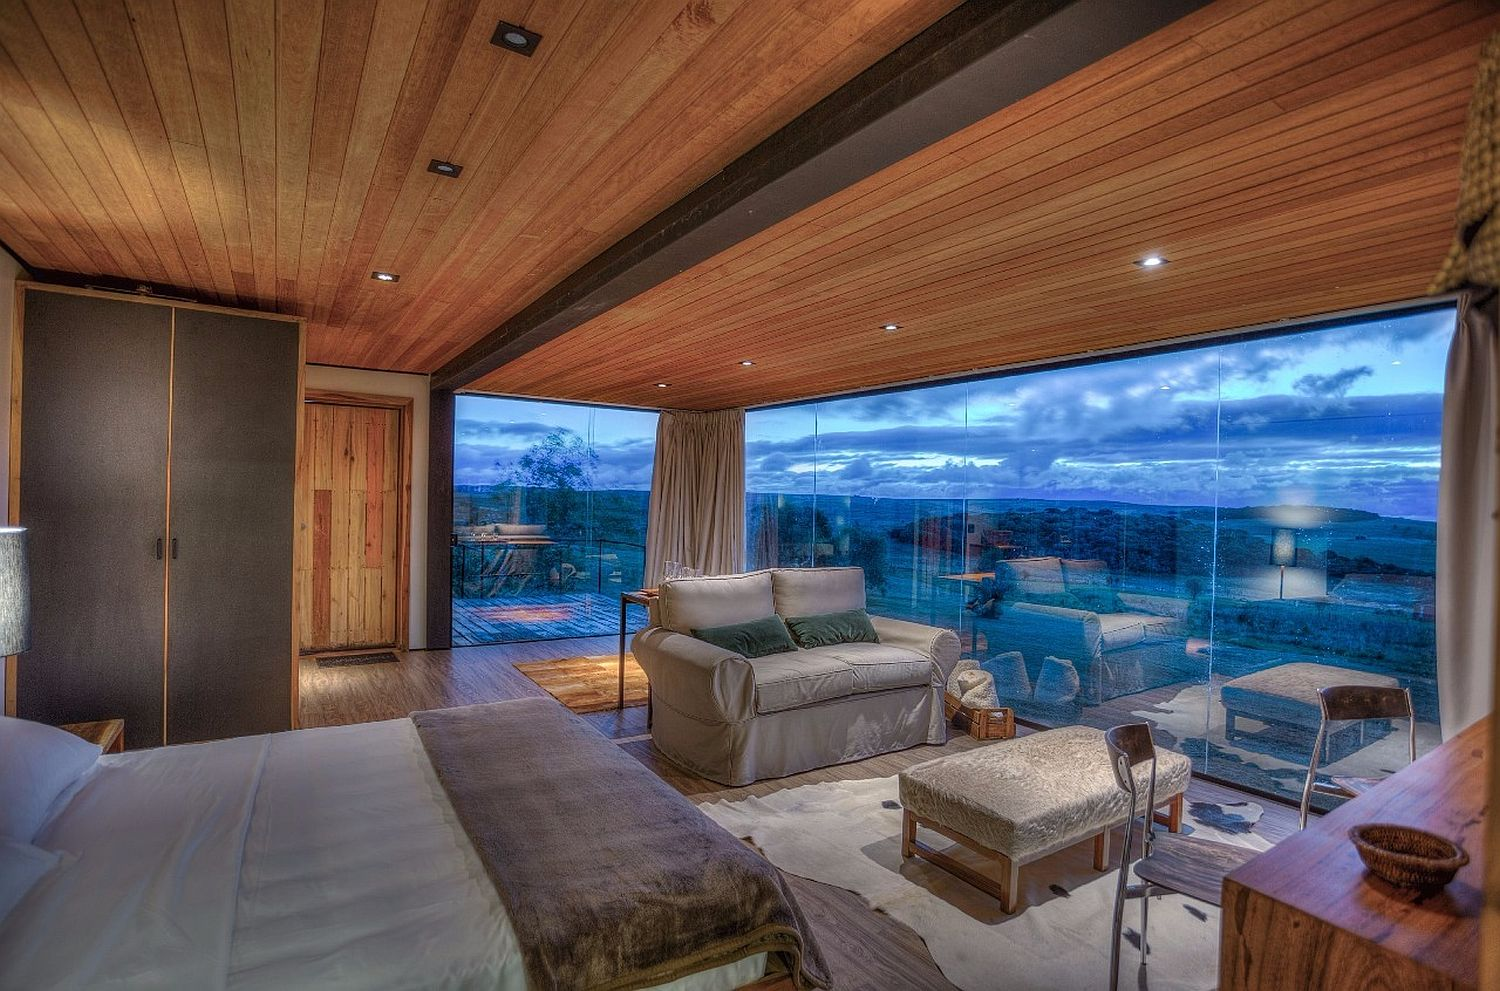 Smart-design-of-the-cabin-with-glass-walls-overlooks-the-landscape-outside